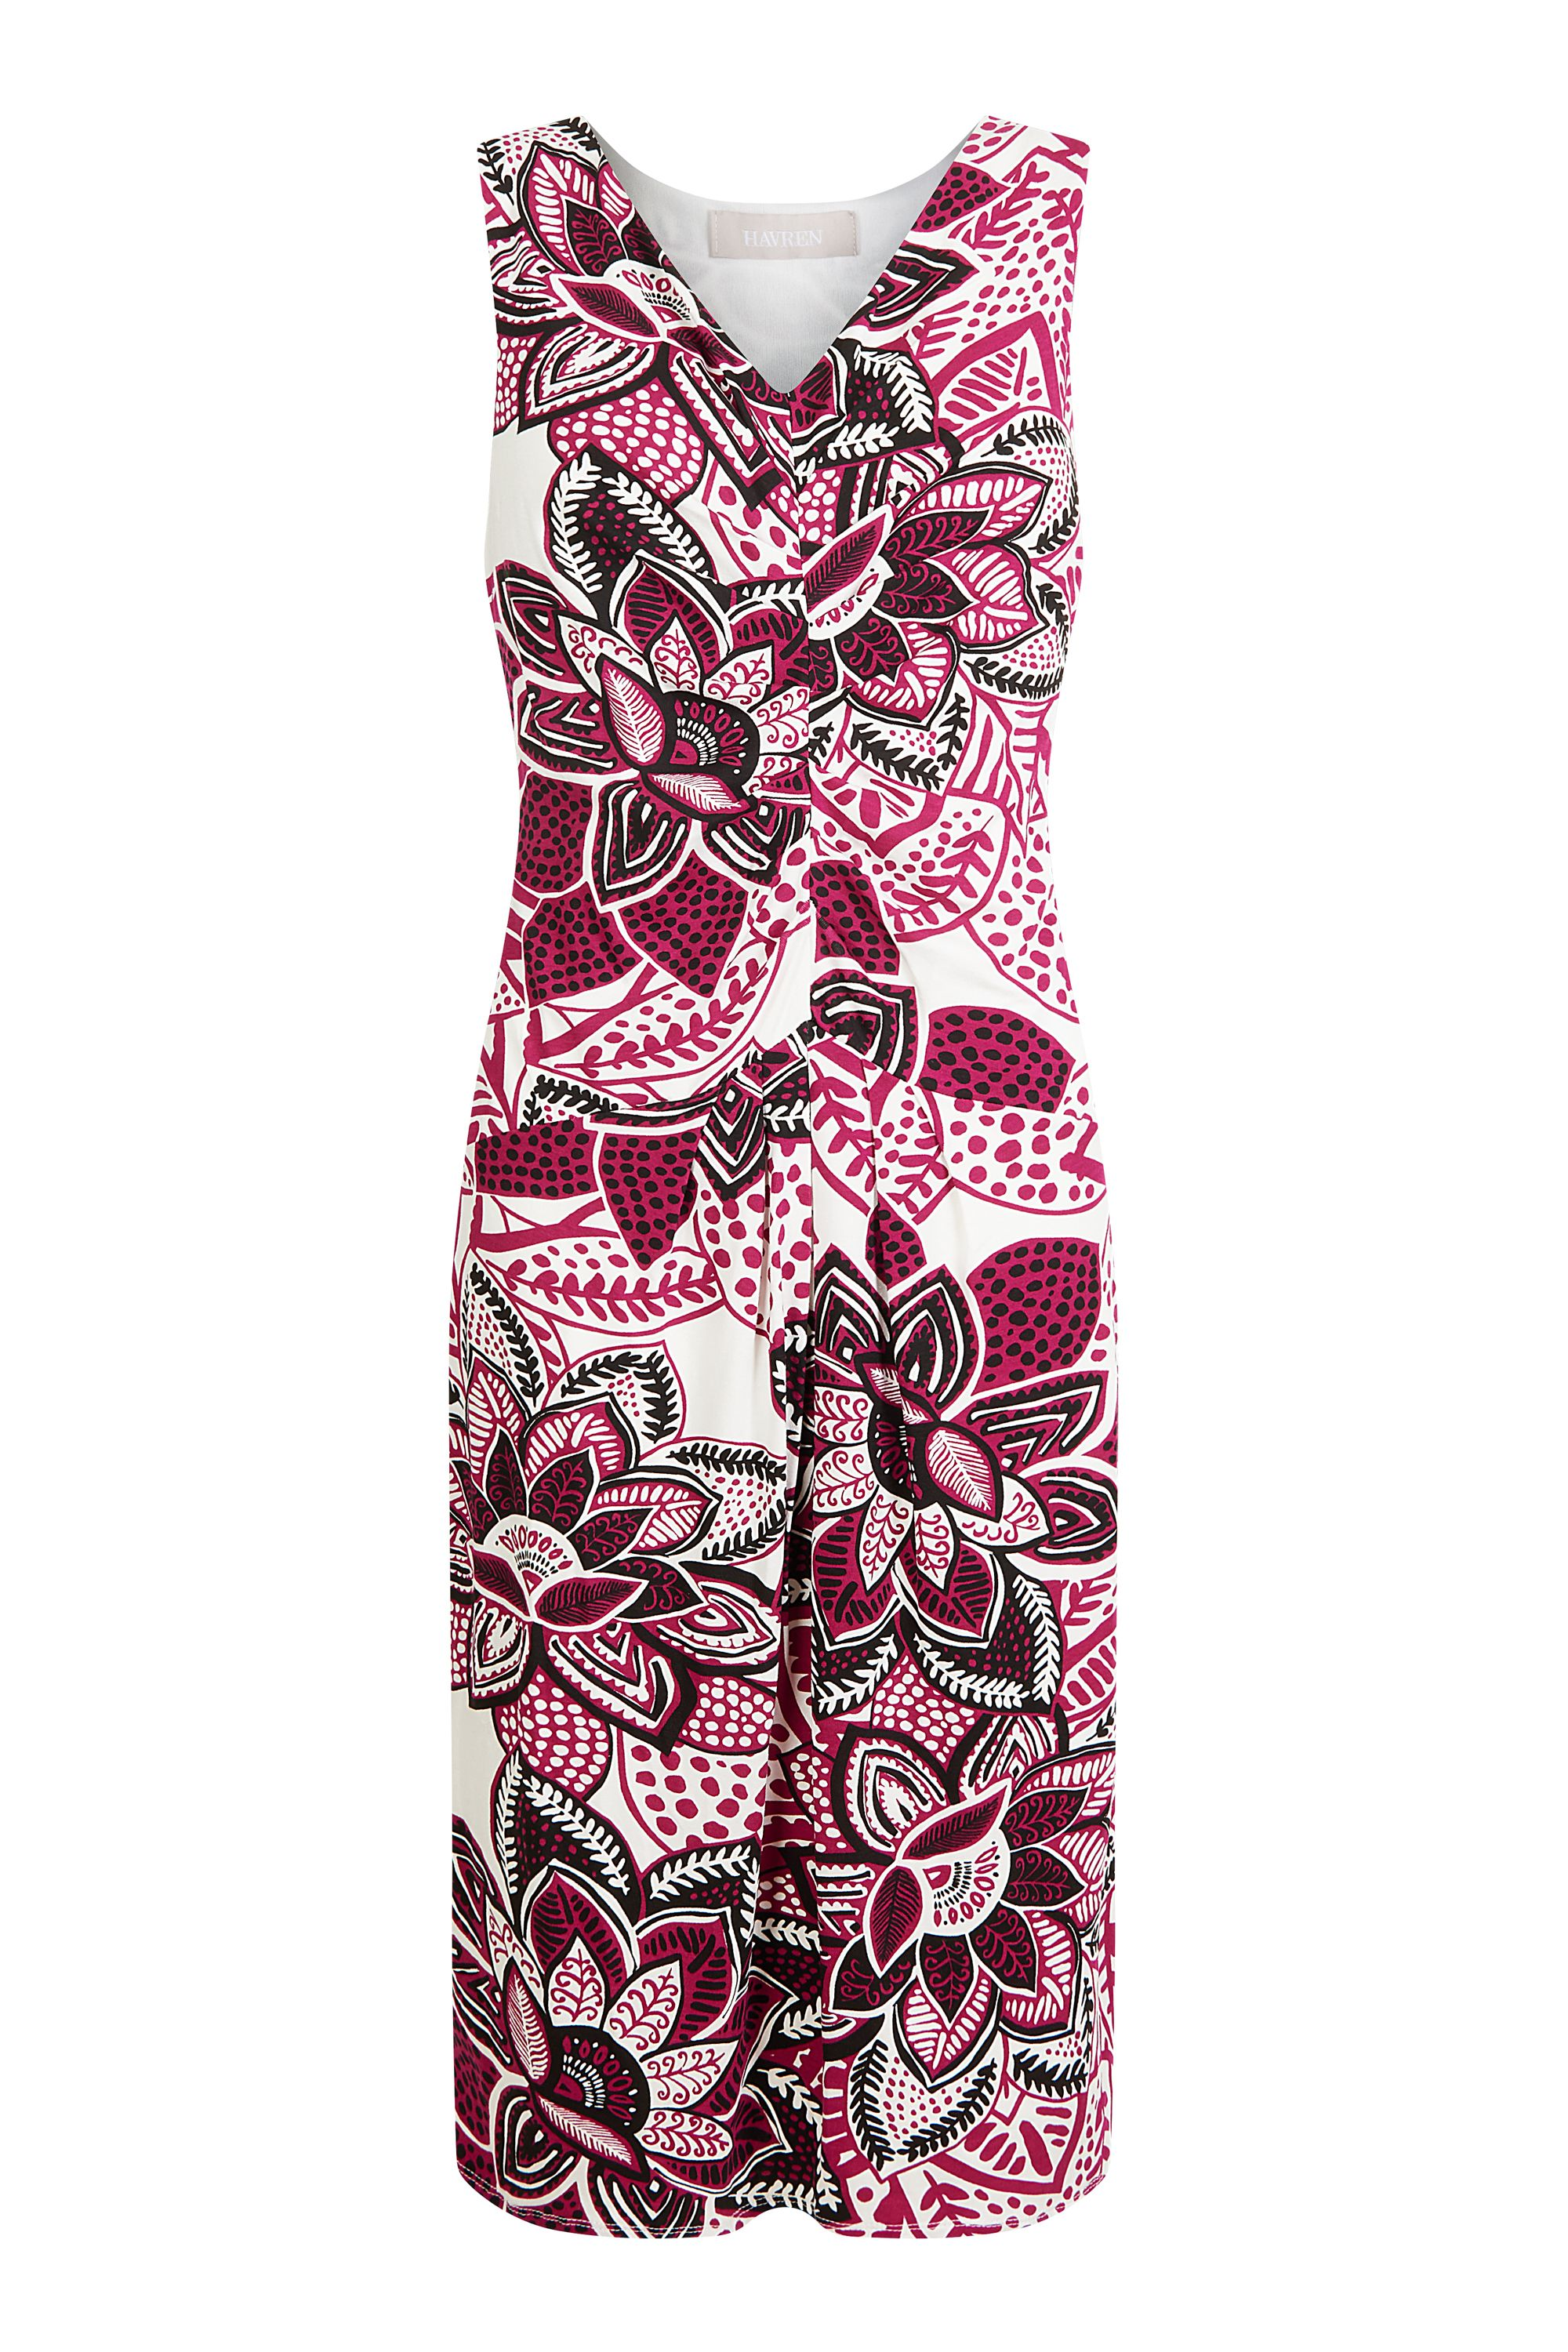 Havren Nikki Jersey Dress, Fuchsia